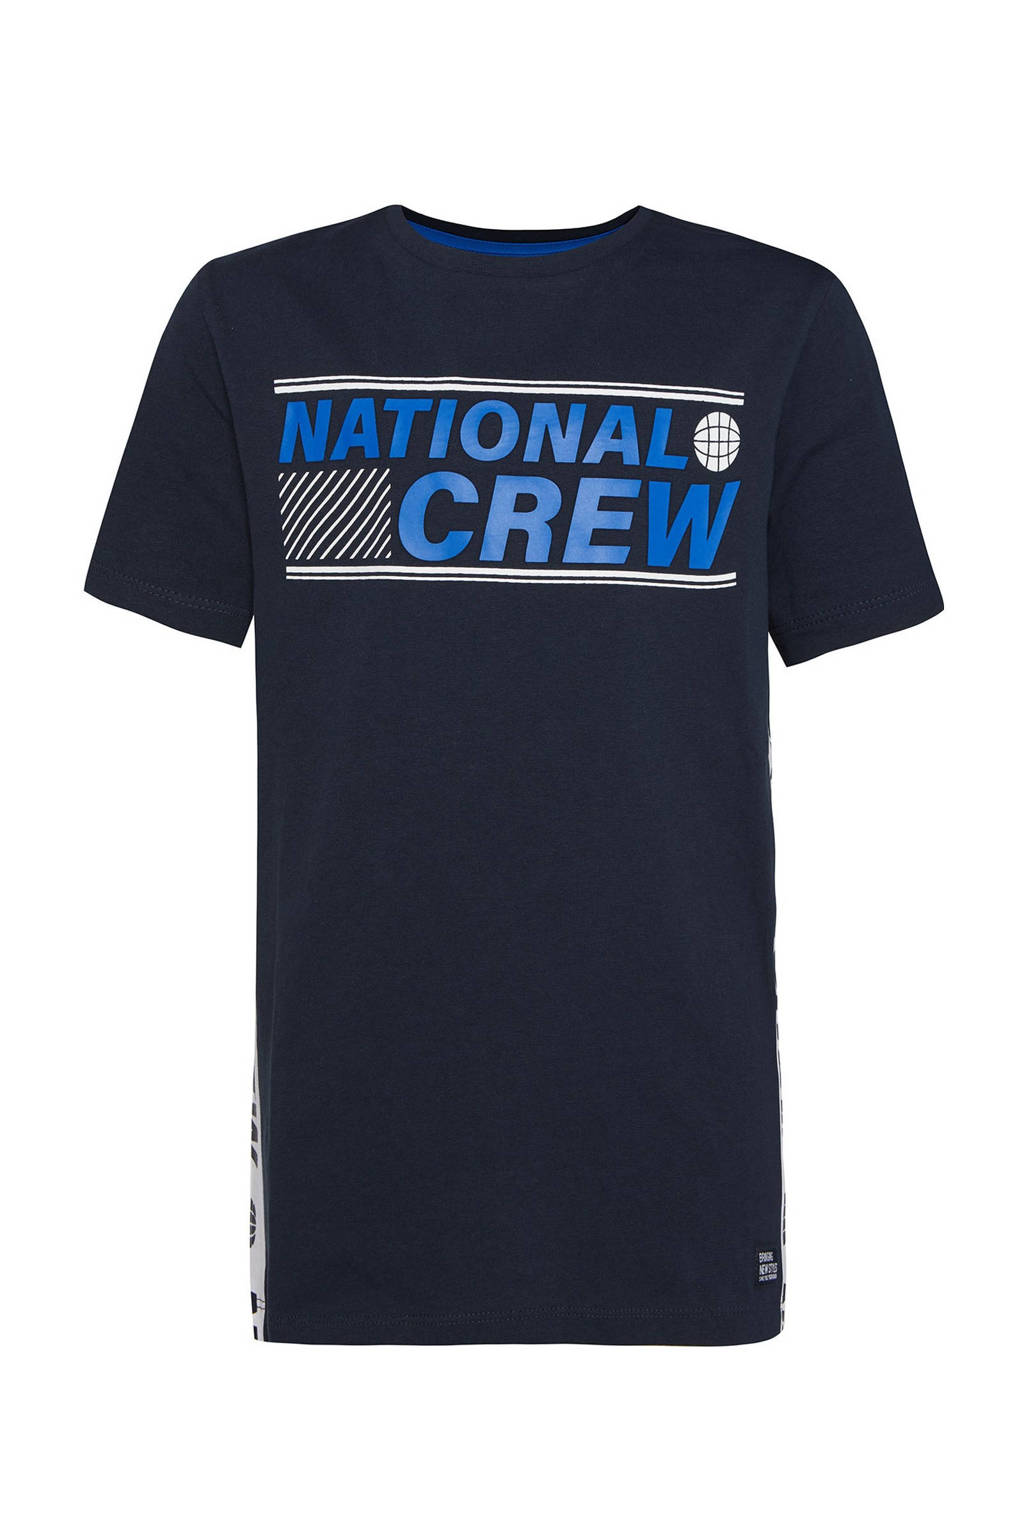 WE Fashion regular fit T-shirt met tekst donkerblauw/blauw/wit, Donkerblauw/blauw/wit